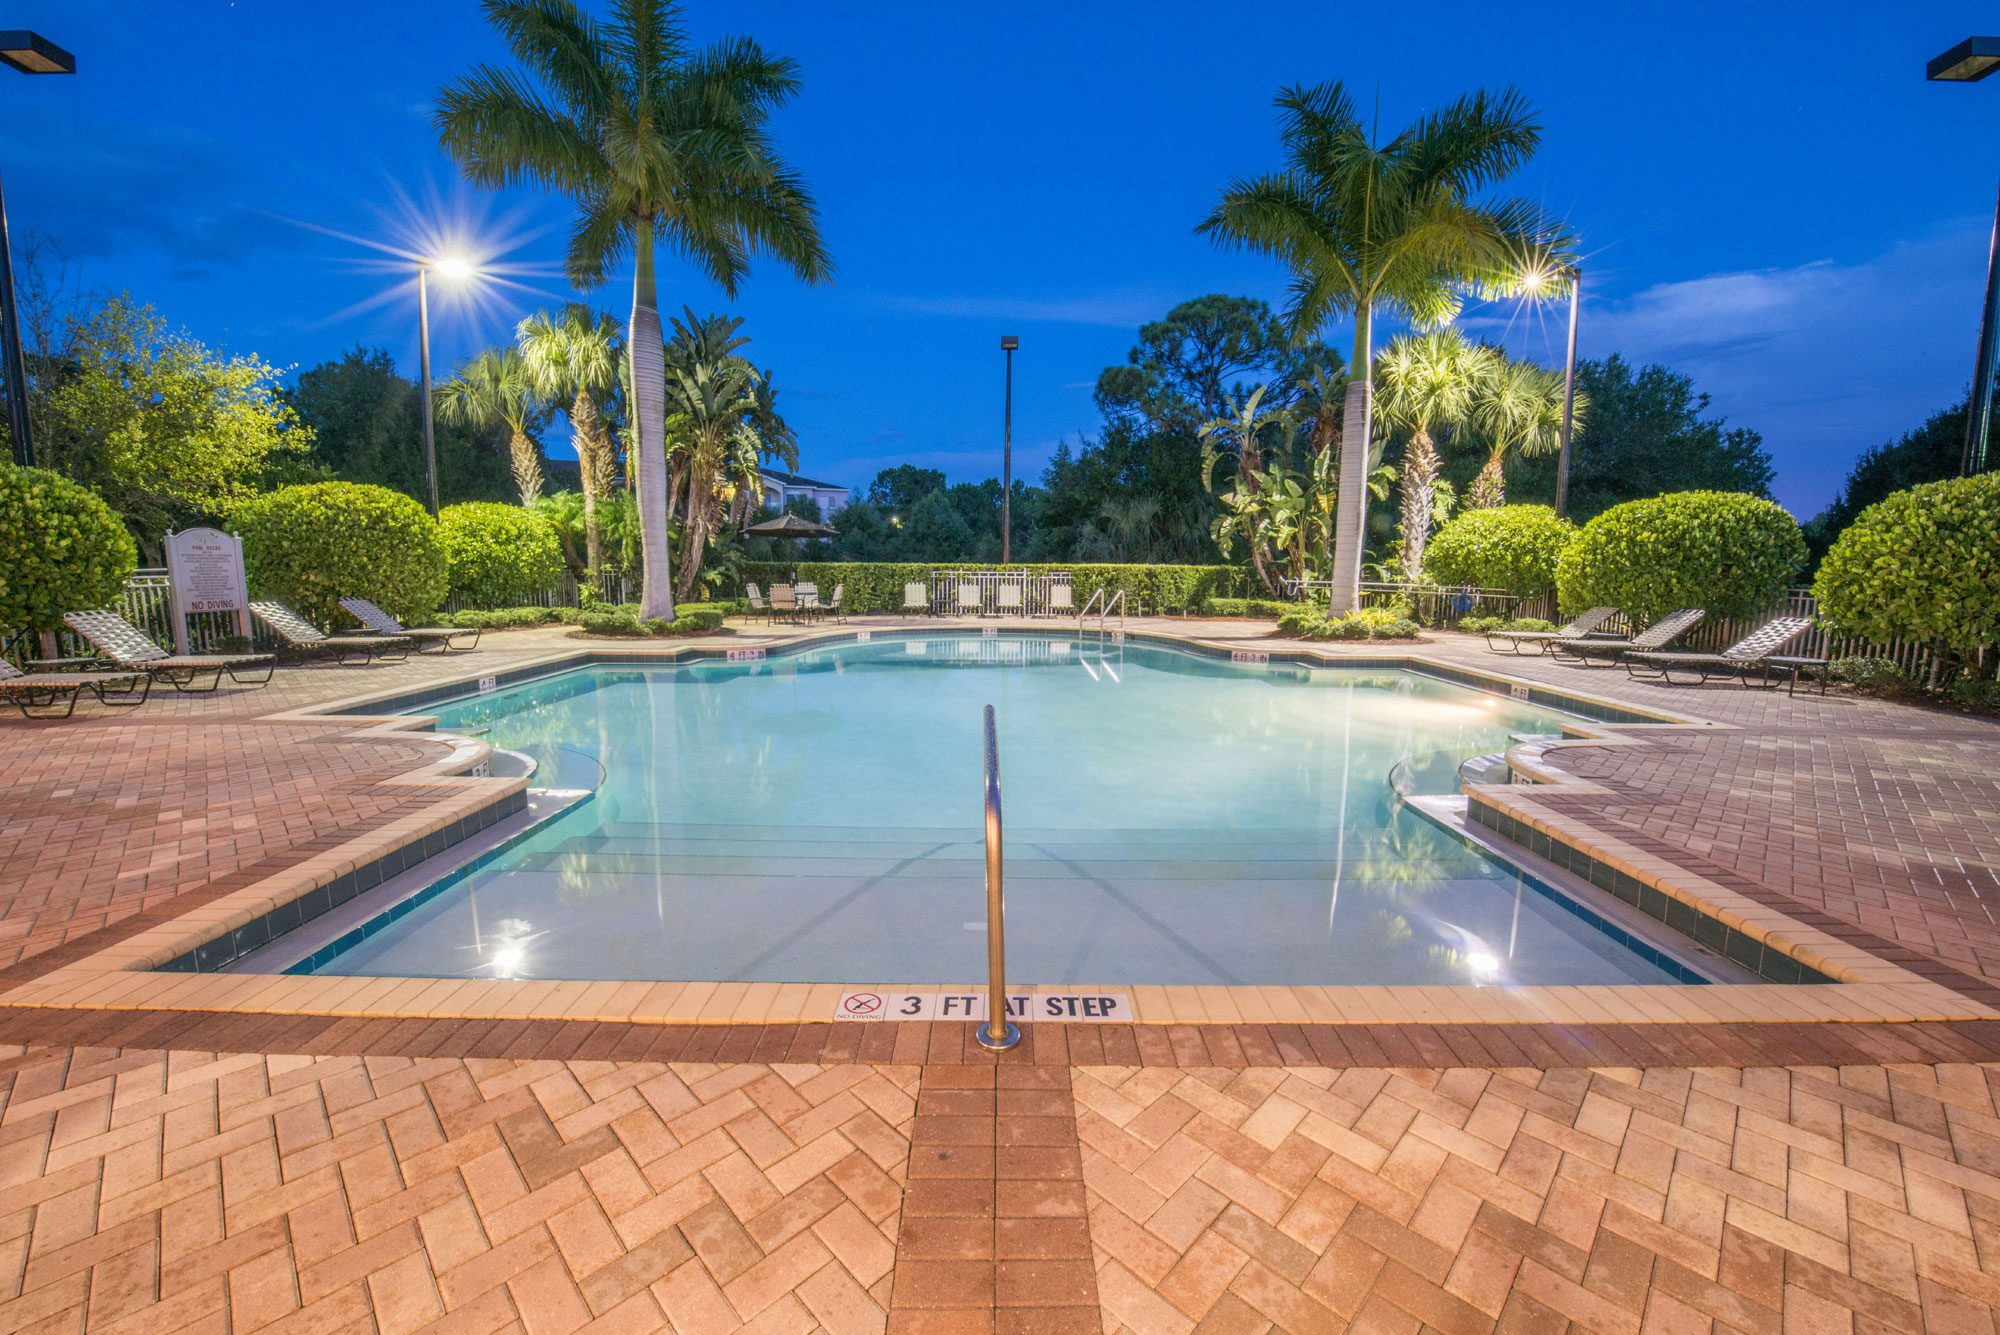 Clubhouse pool at night.